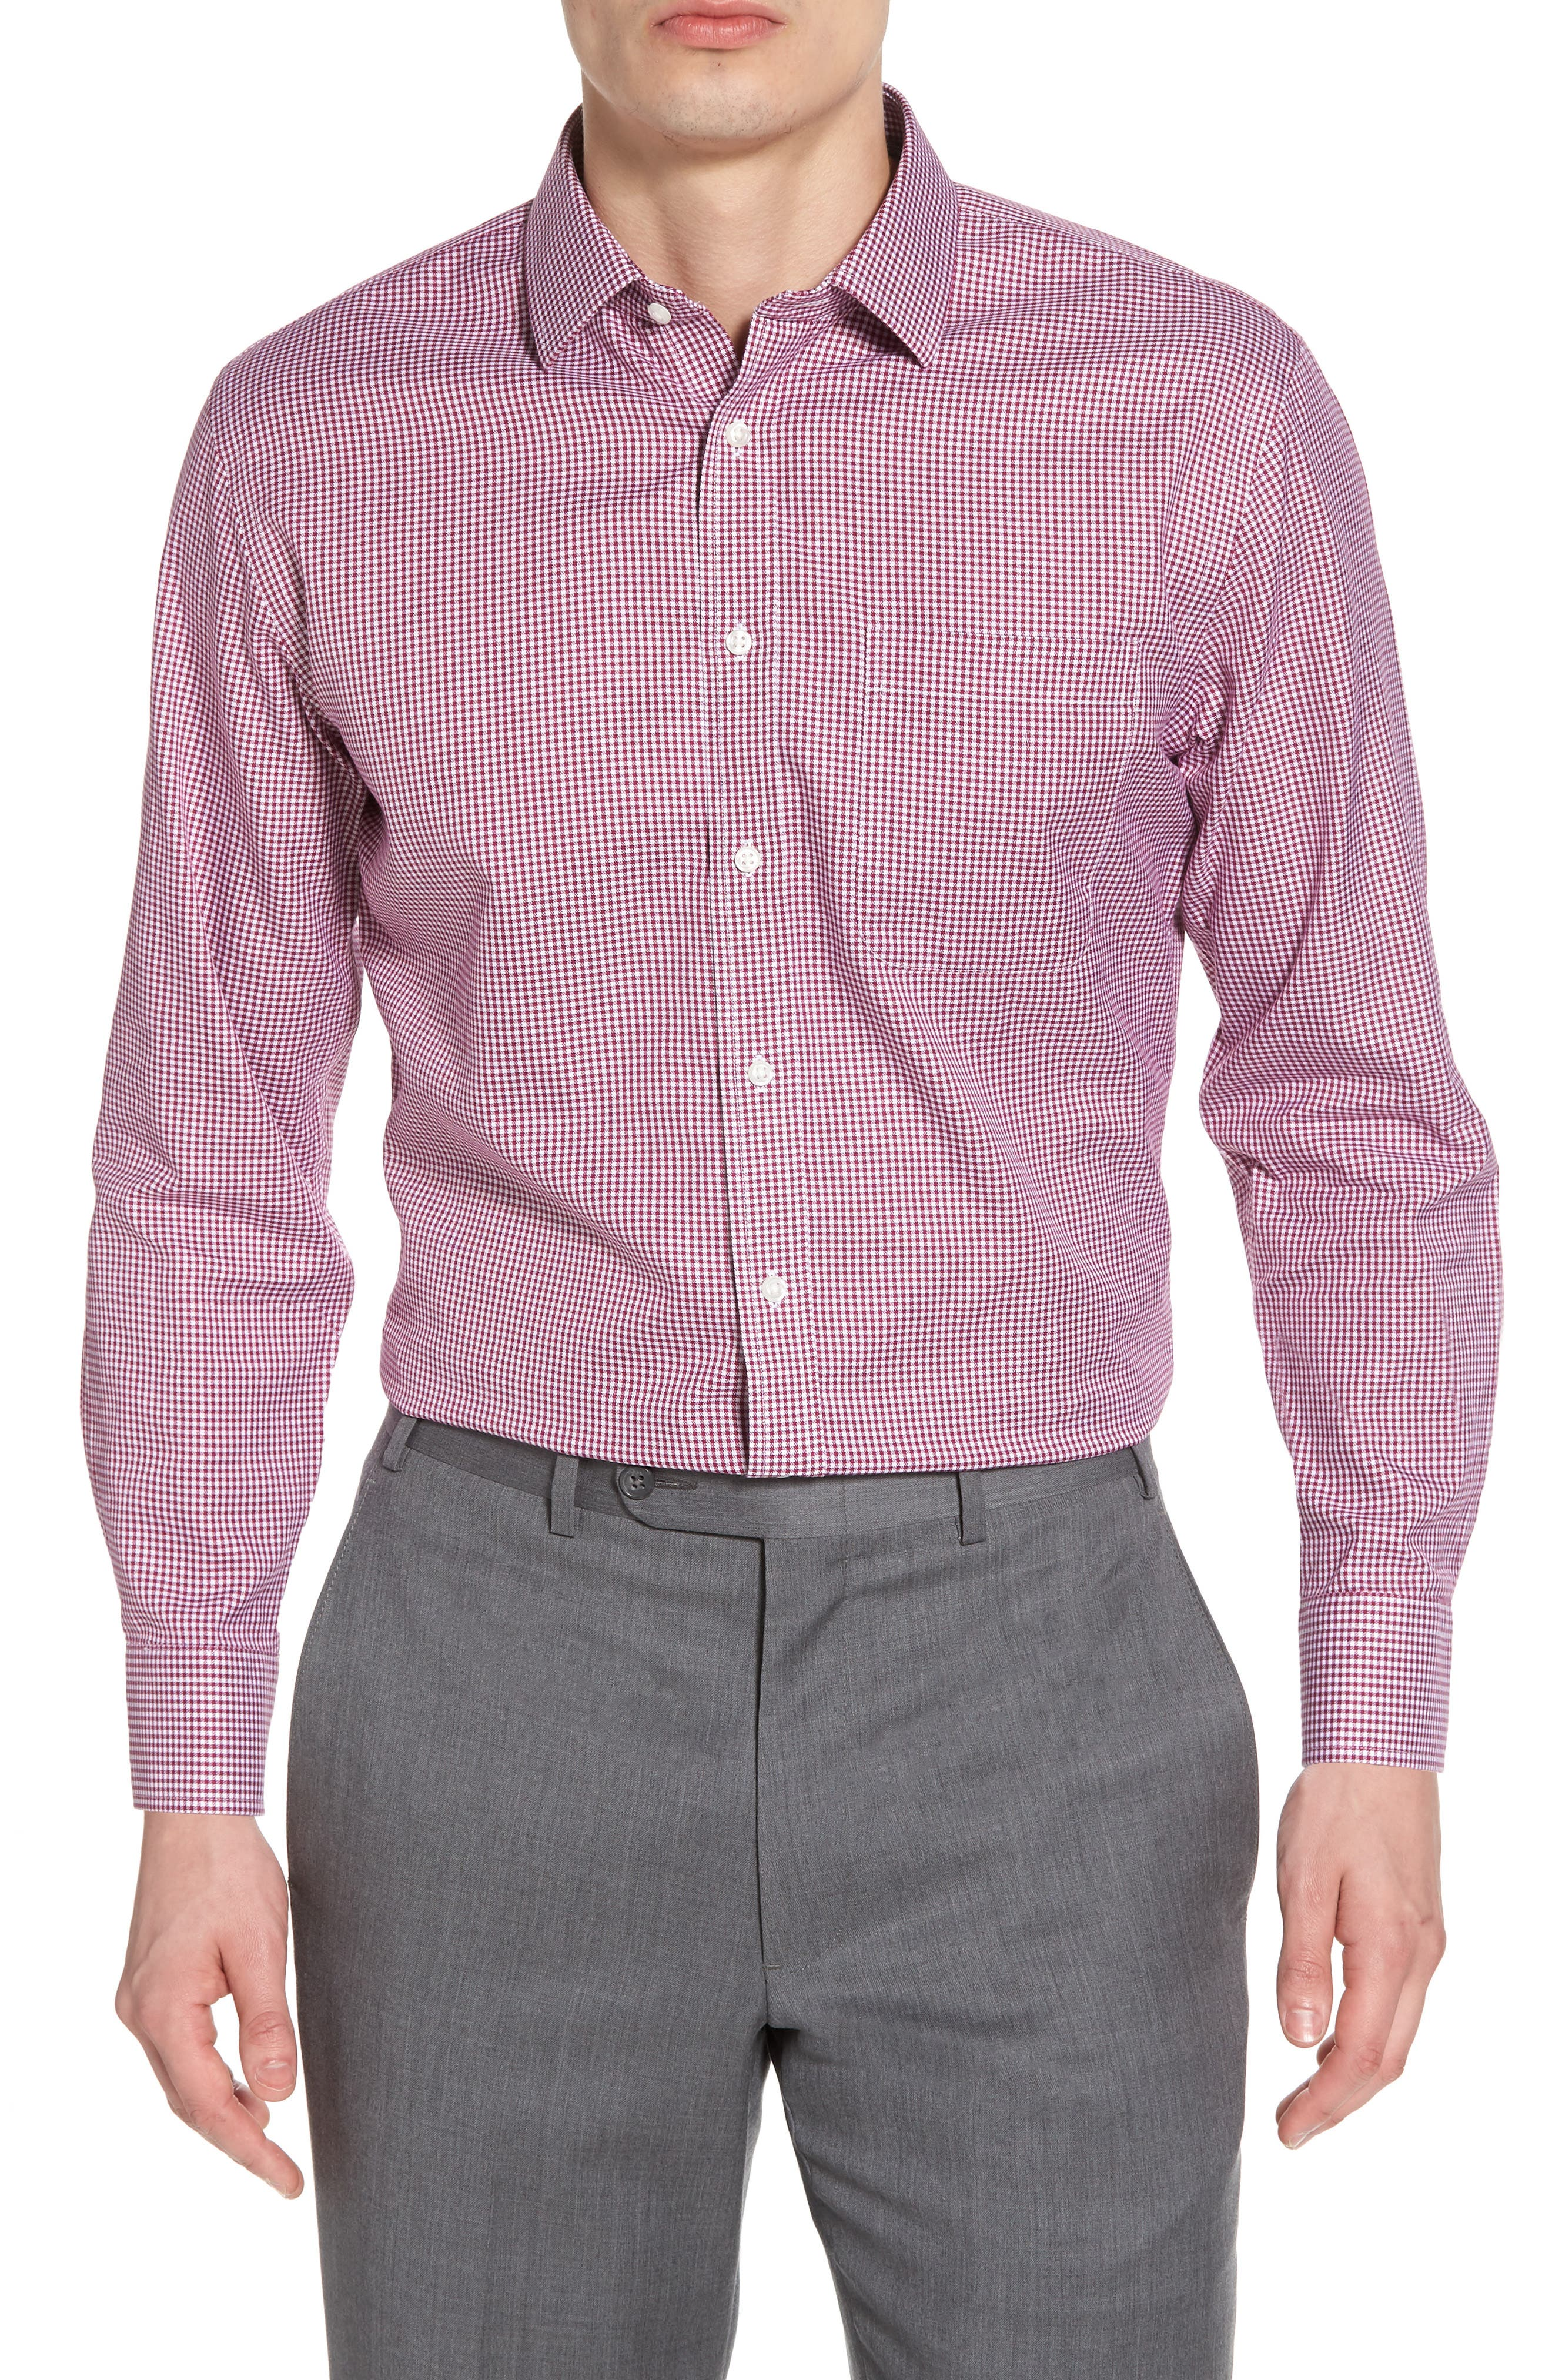 Smartcare<sup>™</sup> Trim Fit Mini Check Dress Shirt,                         Main,                         color, Purple Boysen